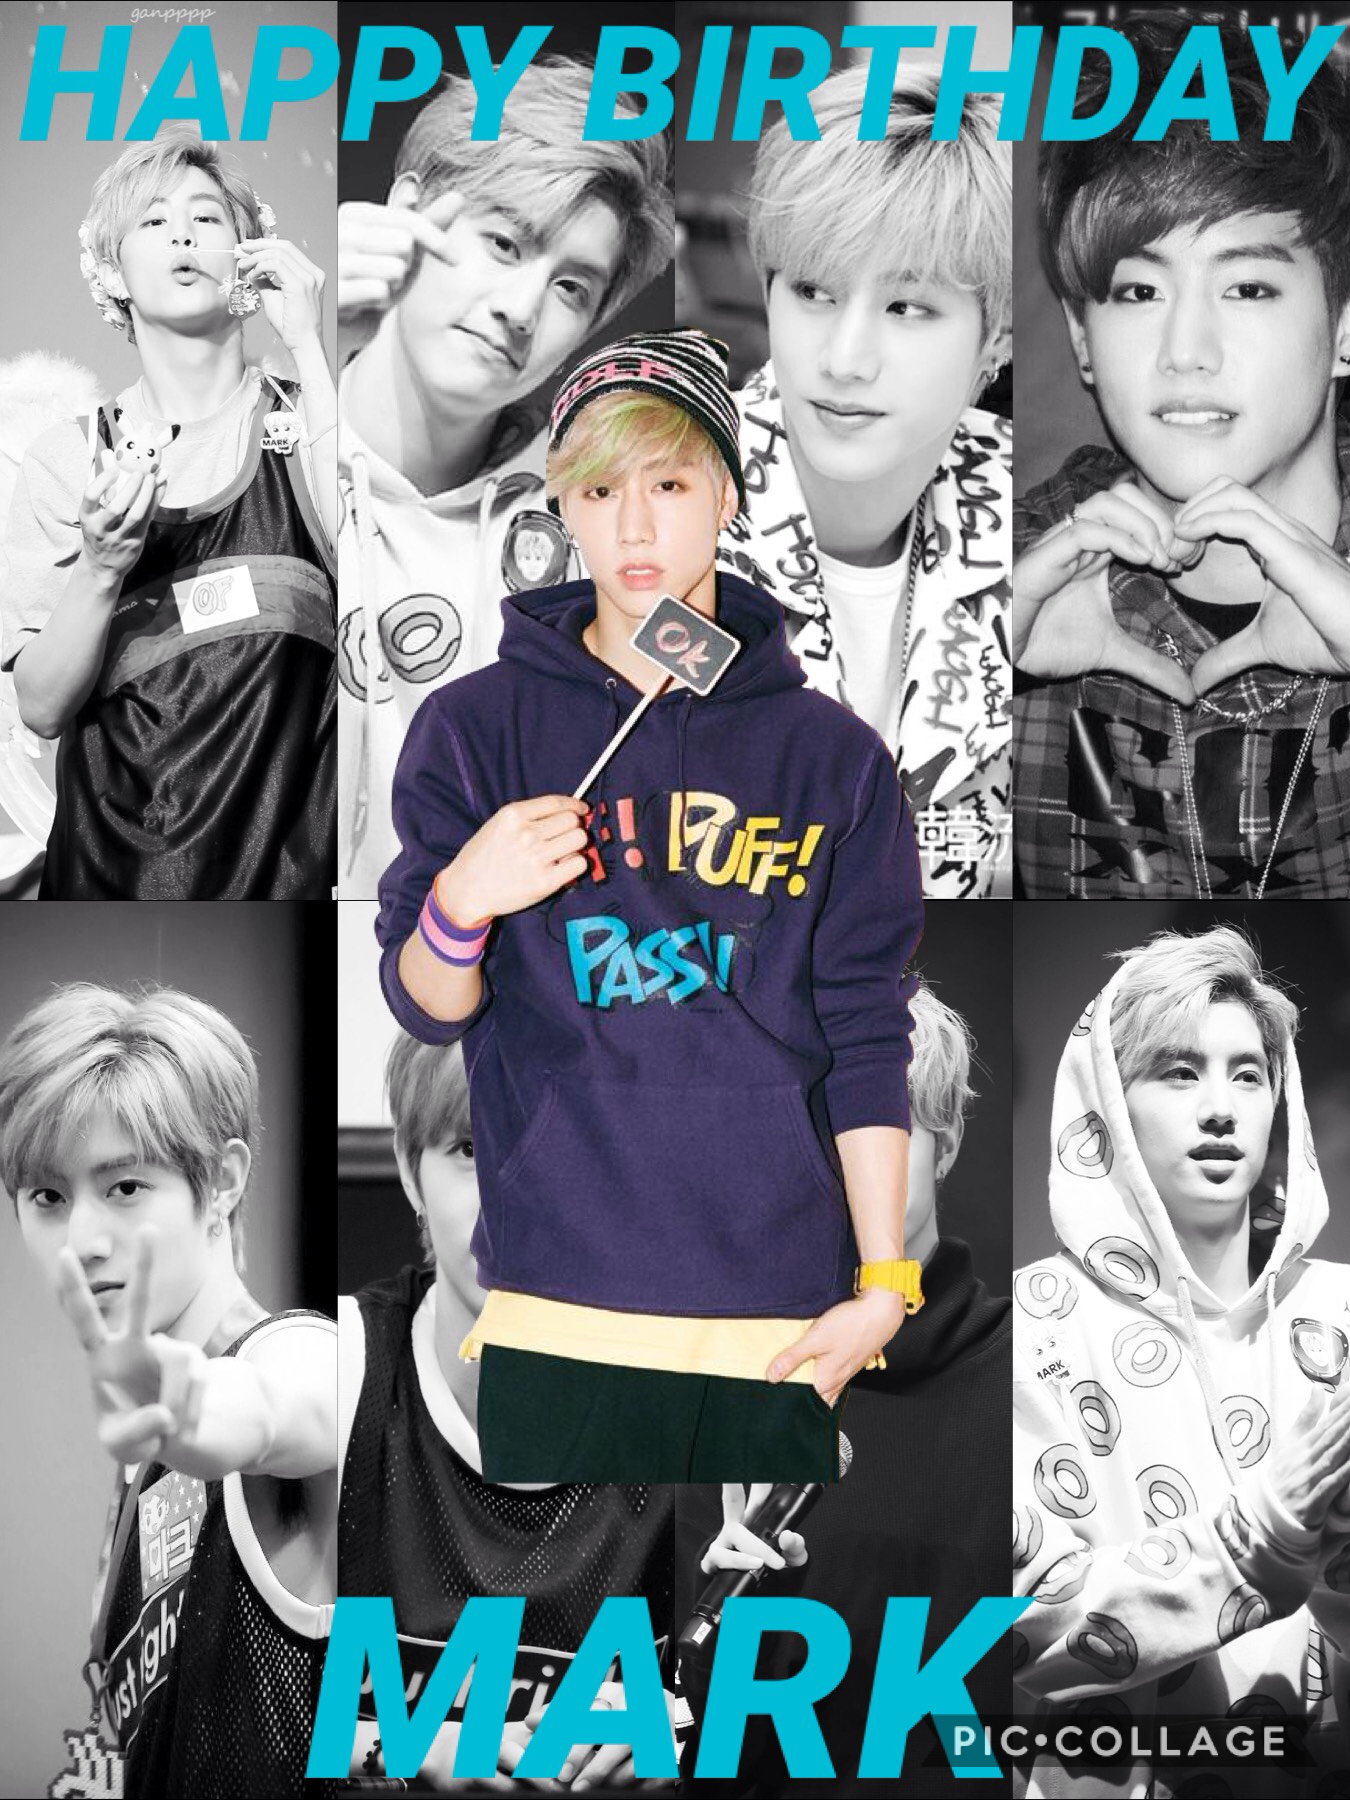 🎉🎉🎉HAPPY BIRTHDAY TO THIS HANDSOME BEAUTIFUL ADORABLE QUIET SWEET LOVABLE HUMAN NAMED MARK🎉🎉🎉!!!!!!! Mark is my bias from Got7. If had to to choose an ultimate bias it would be Mark or Namjoon, I love them both soooo much!!!